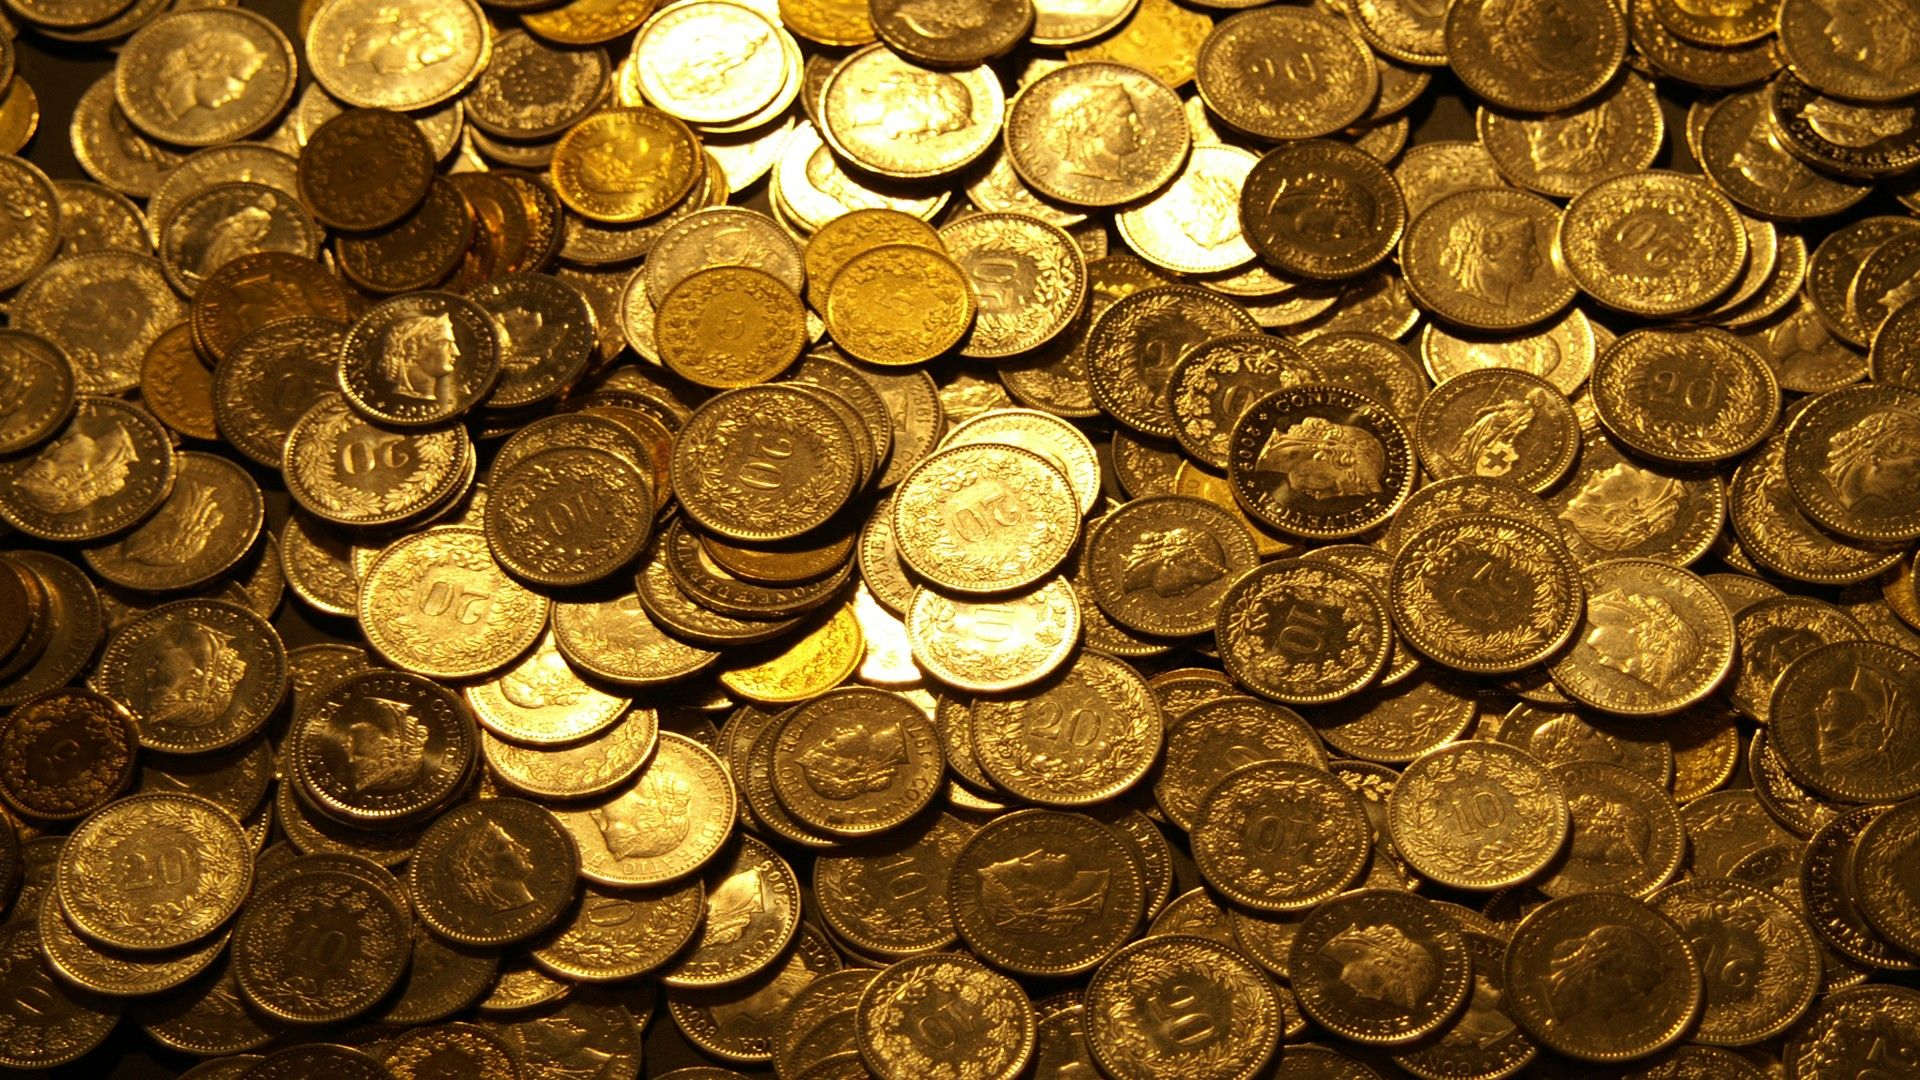 Coins High Quality New Desktop Wide Wallpaper In Widescreen